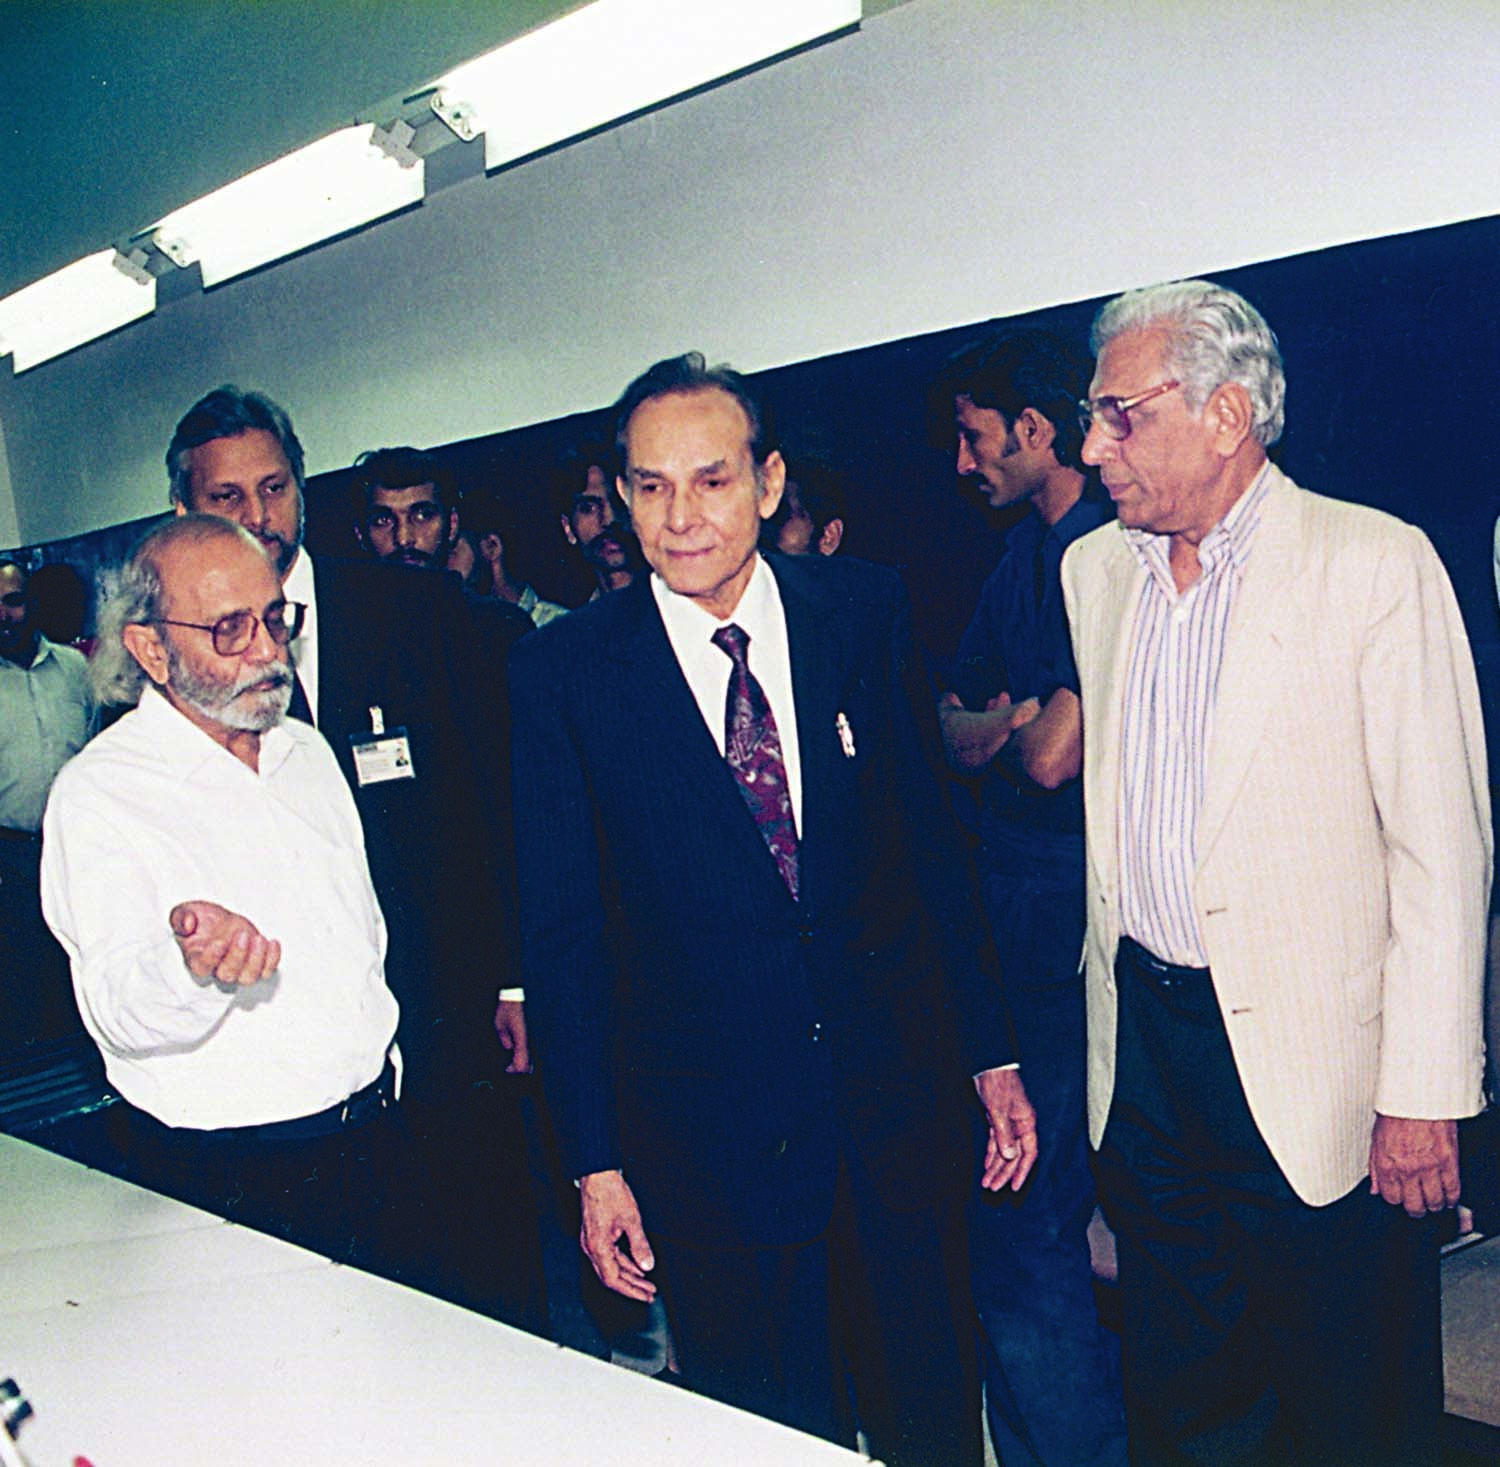 It was during Saleem Asmi's tenure that Dawn Islamabad edition was launched. Here he is seen at the launching ceremony talking to Ahmad Ali Khan, his predecessor, who was the guest of honour on the occasion. M. Ziauddin, who at the time was the resident editor in Islamabad, is seen on the right.